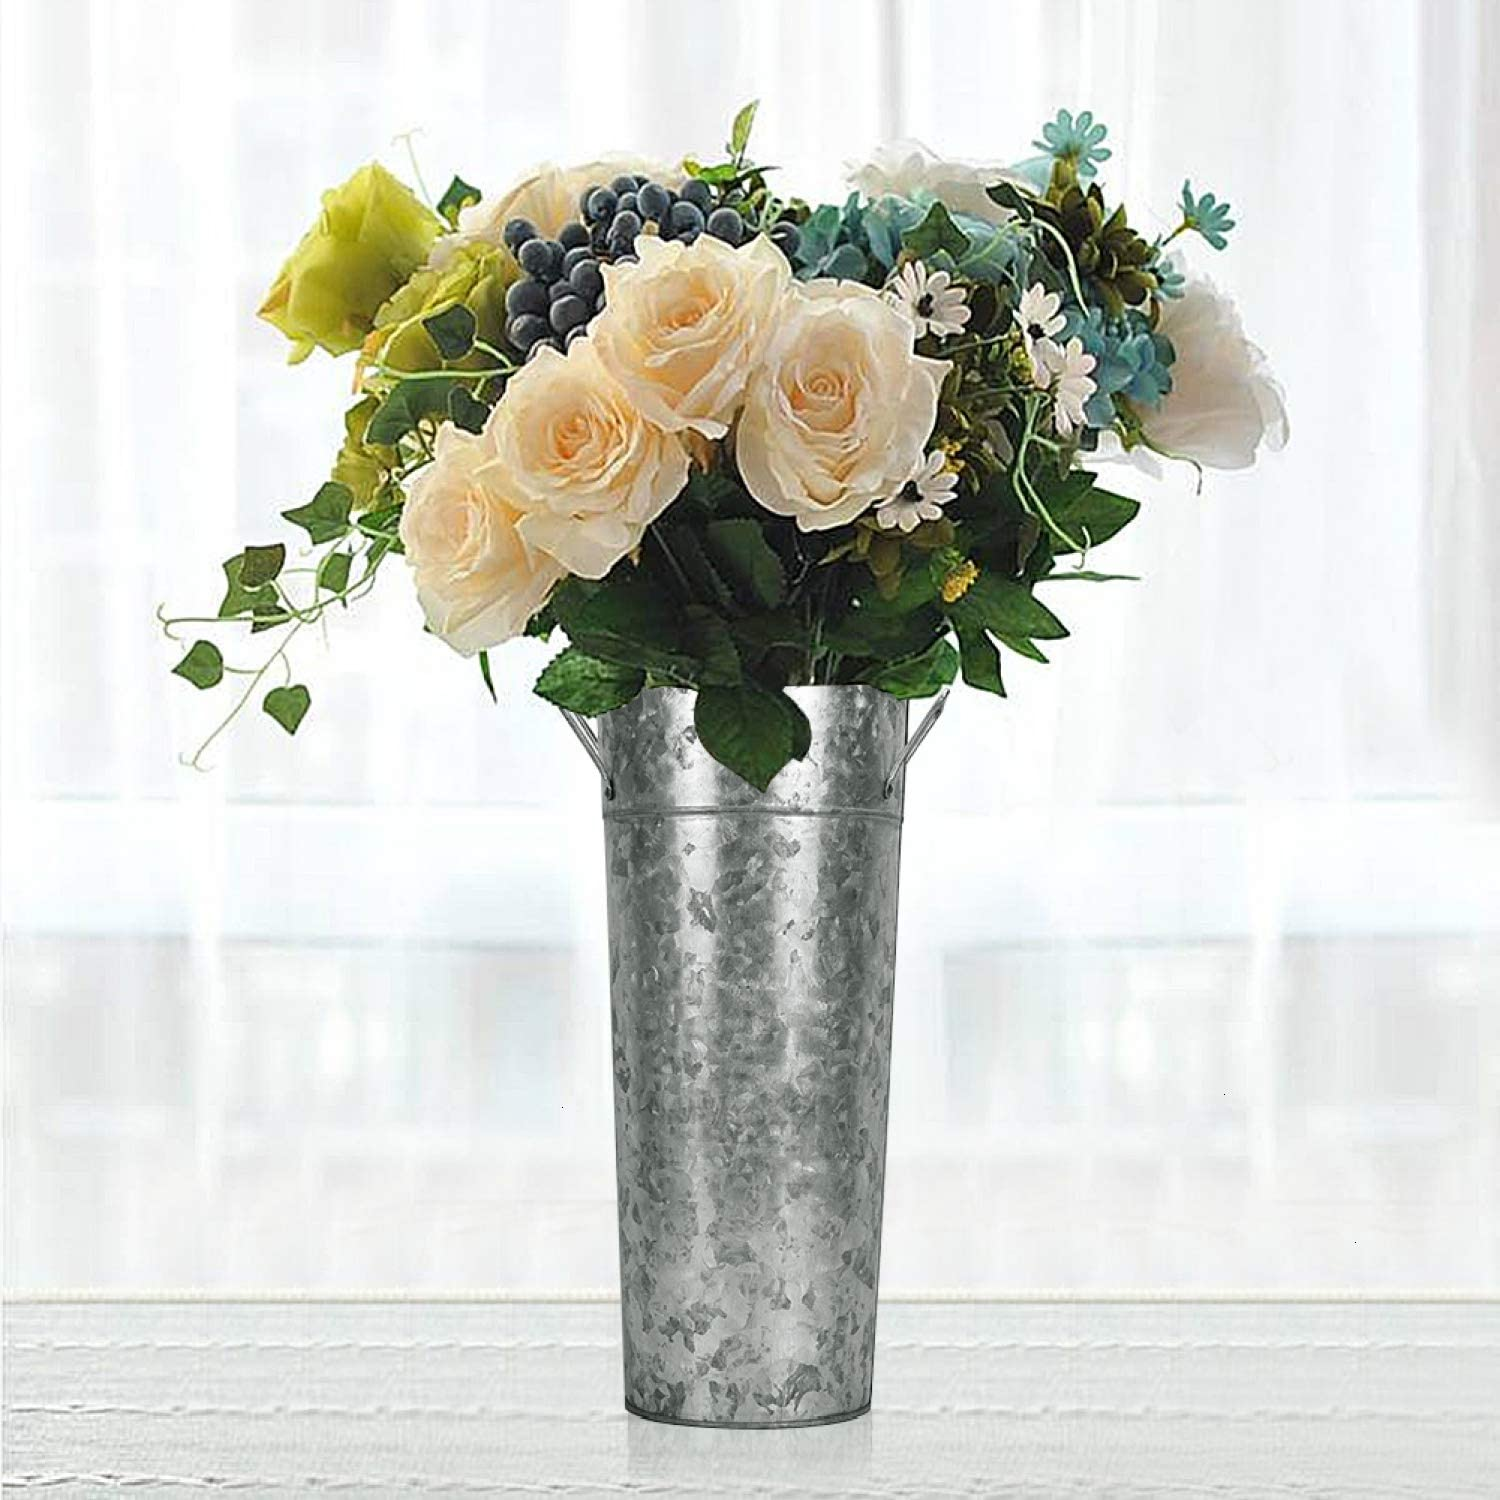 Yoleshy 15 High Galvanized Vase With Handles Tall Farmhouse Bucket For Fresh Dried Floral Arrangements Rustic Decorated For Wedding And Home Flowers Not Included Amazon Co Uk Health Personal Care